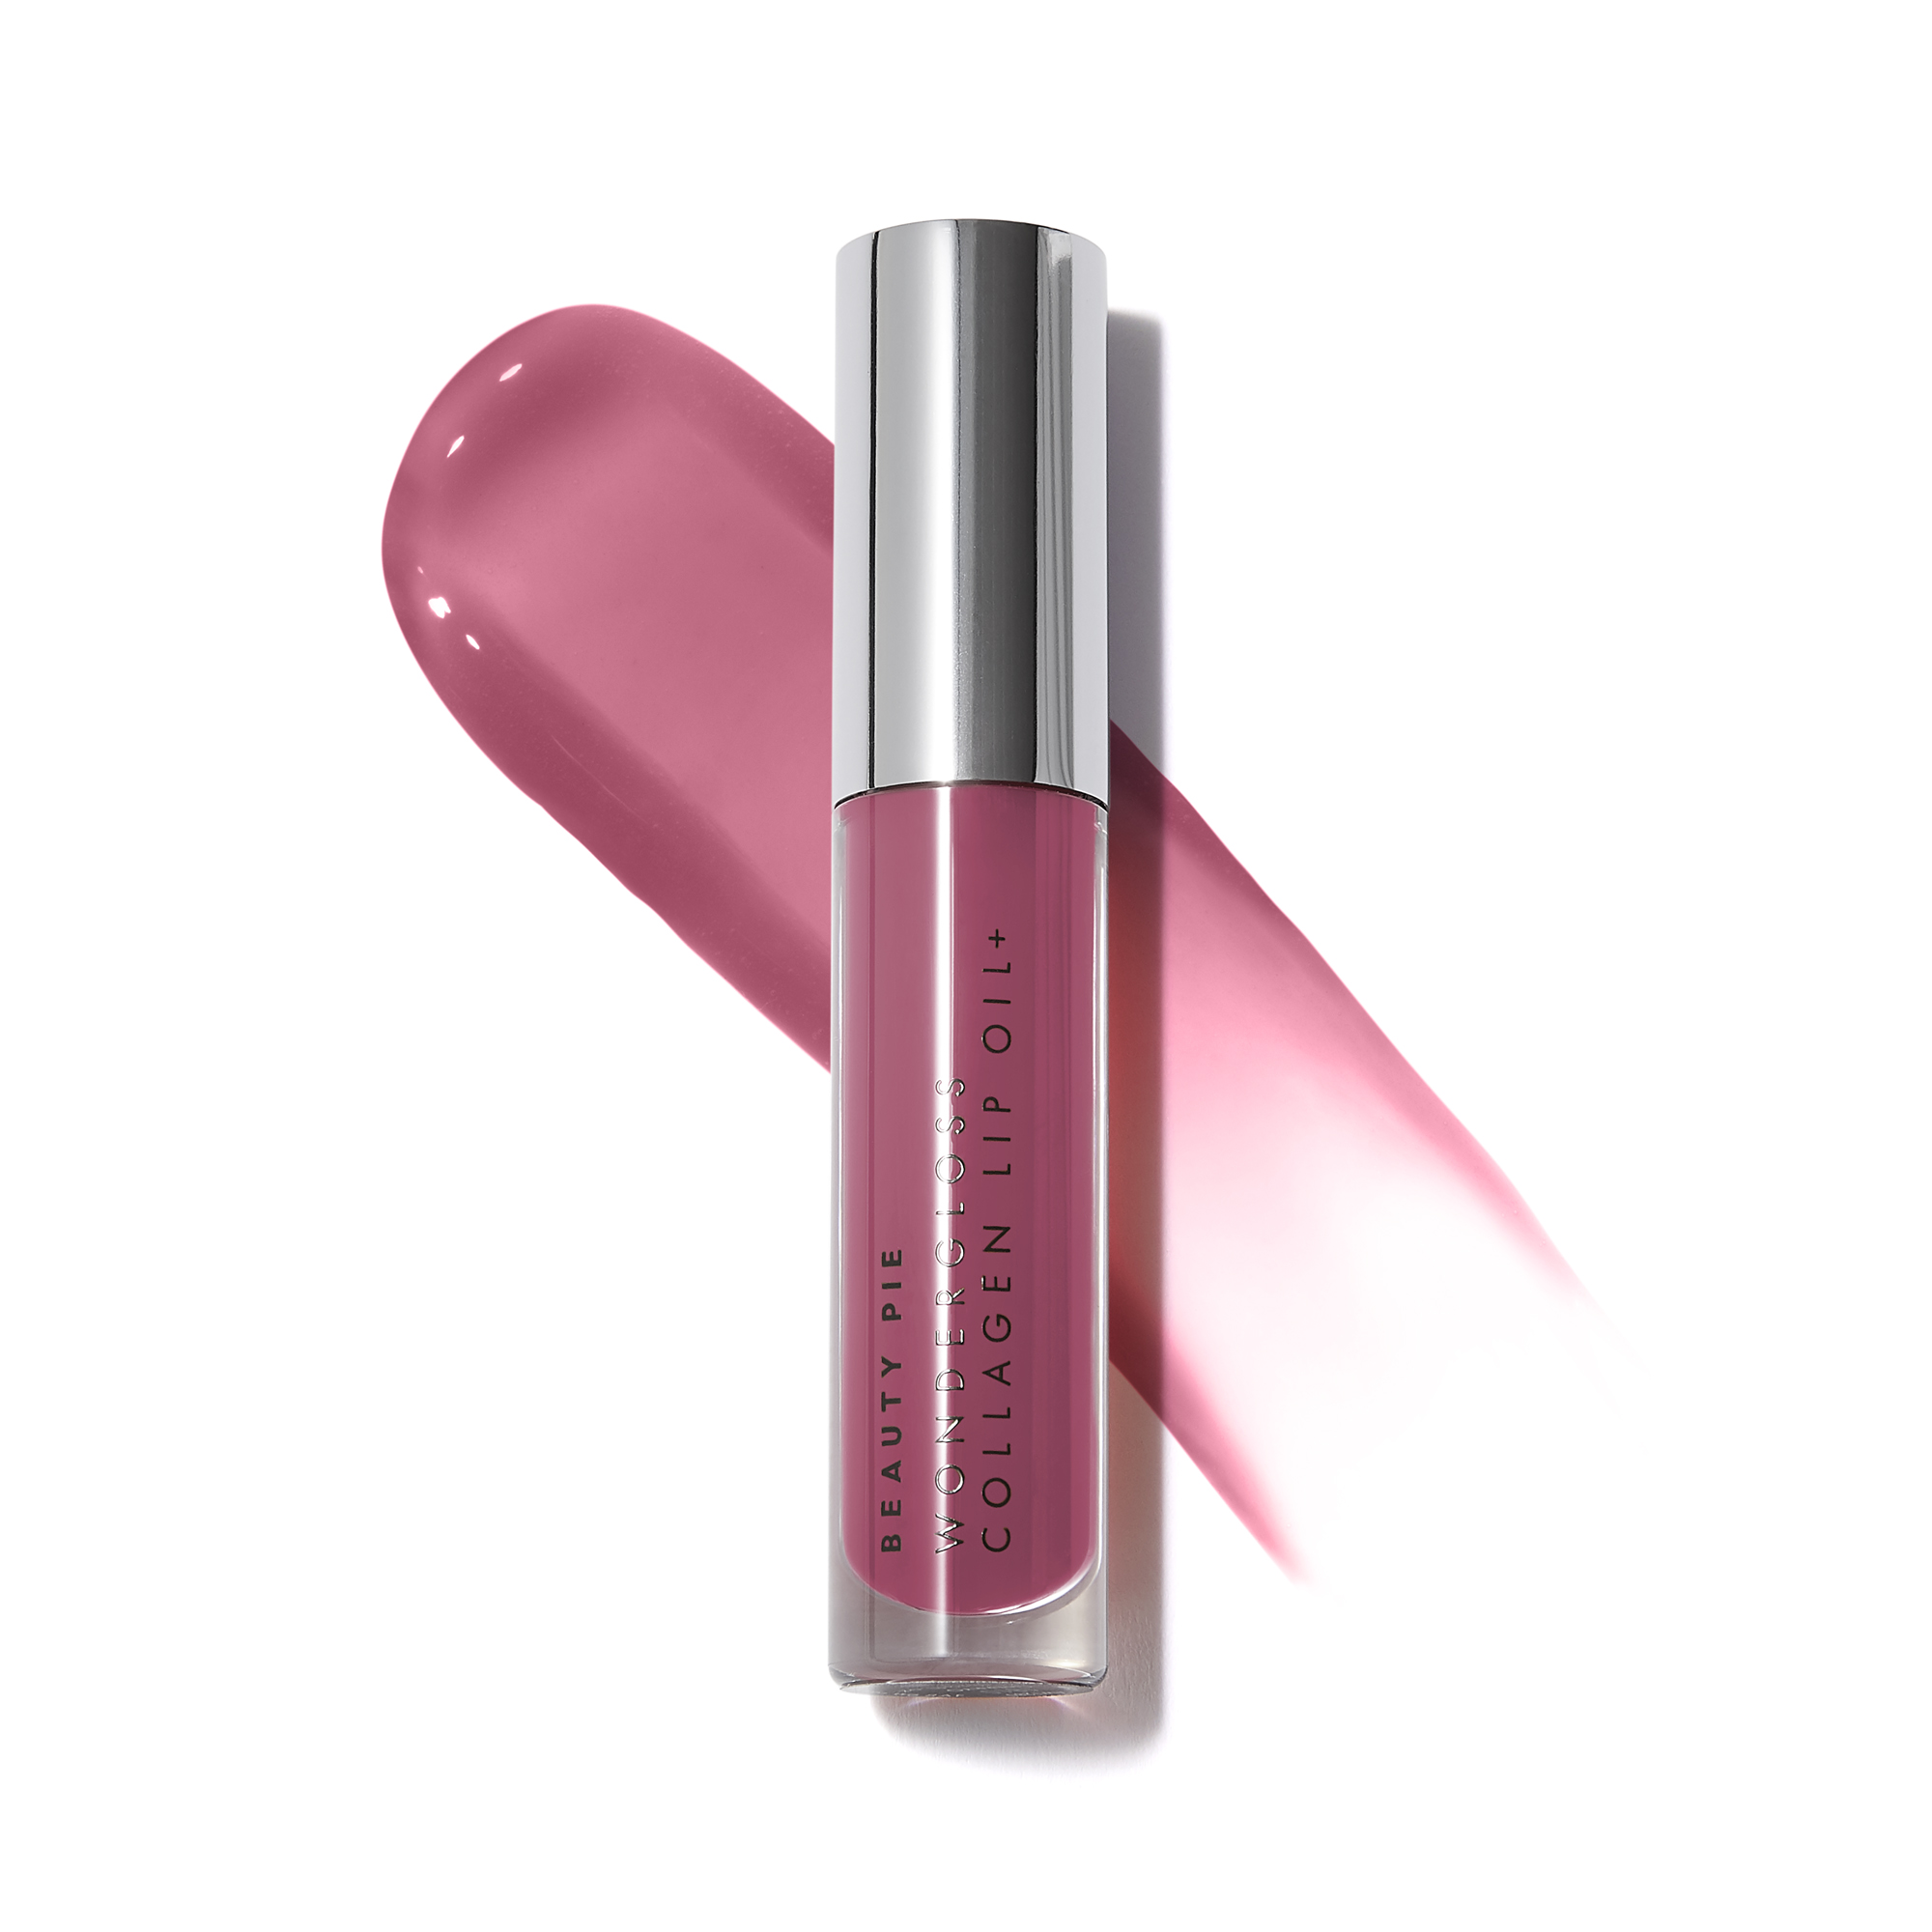 Wondergloss Lip Oil by Beauty Pie